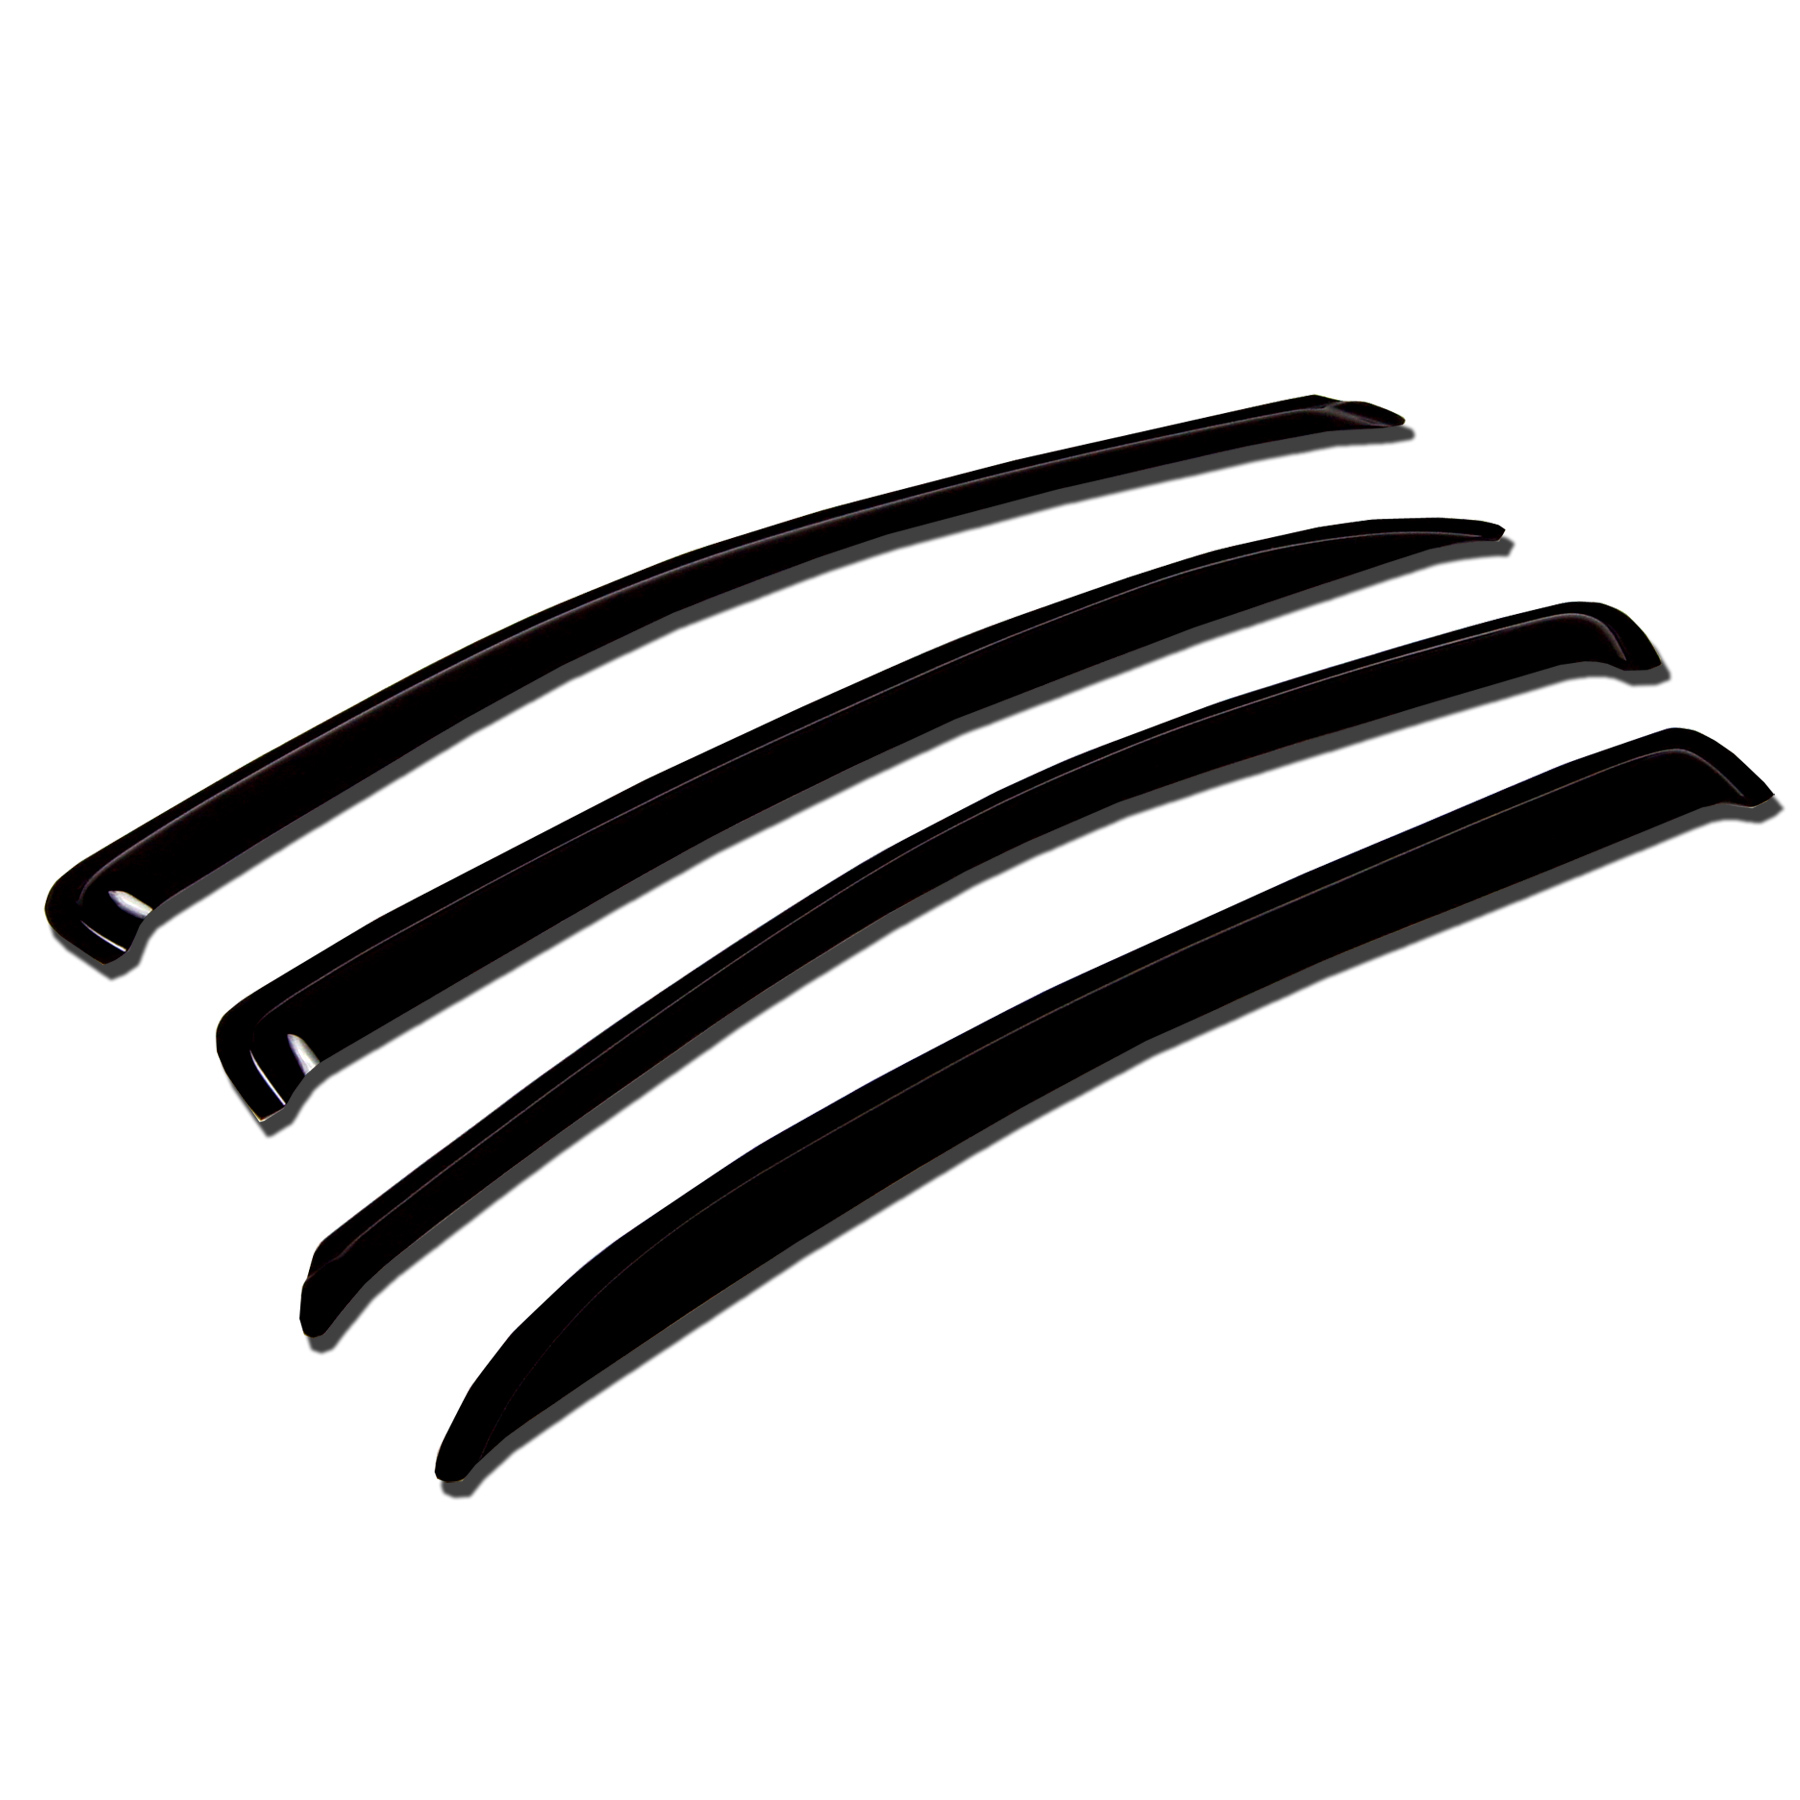 TuningPros WV-403-2 Window Visor For 1989-1998 Suzuki Sidekick - Outside Mount Deflector Rain Guard Dark Smoke 4 Pcs Set Suzuki Sidekick 89 90 91 92 93 94 95 96 97 98